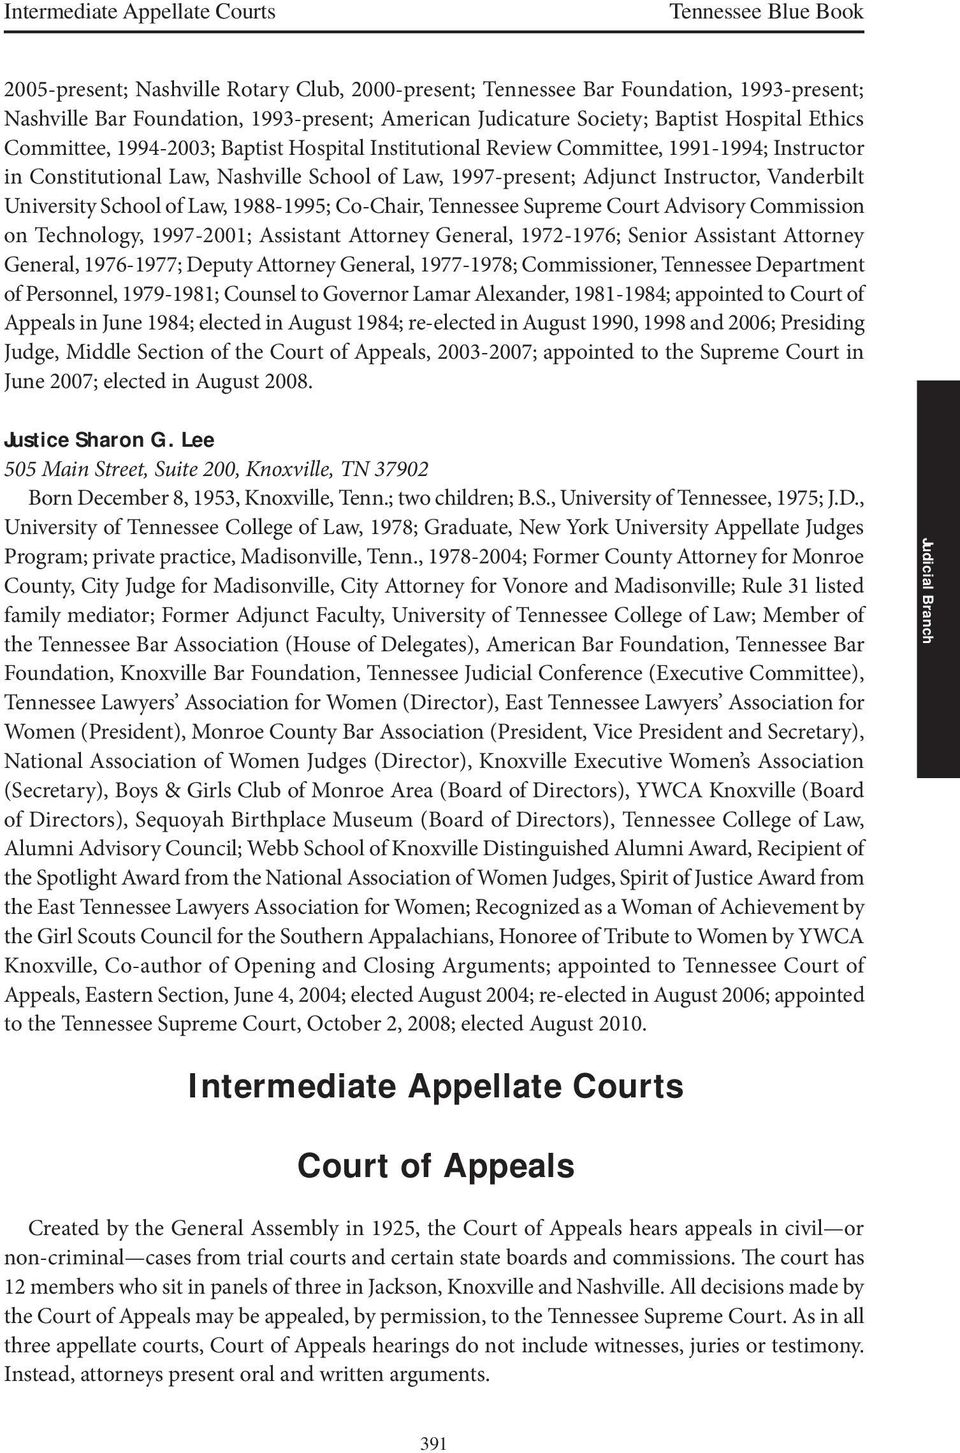 Adjunct Instructor, Vanderbilt University School of Law, 1988-1995; Co-Chair, Tennessee Supreme Court Advisory Commission on Technology, 1997-2001; Assistant Attorney General, 1972-1976; Senior